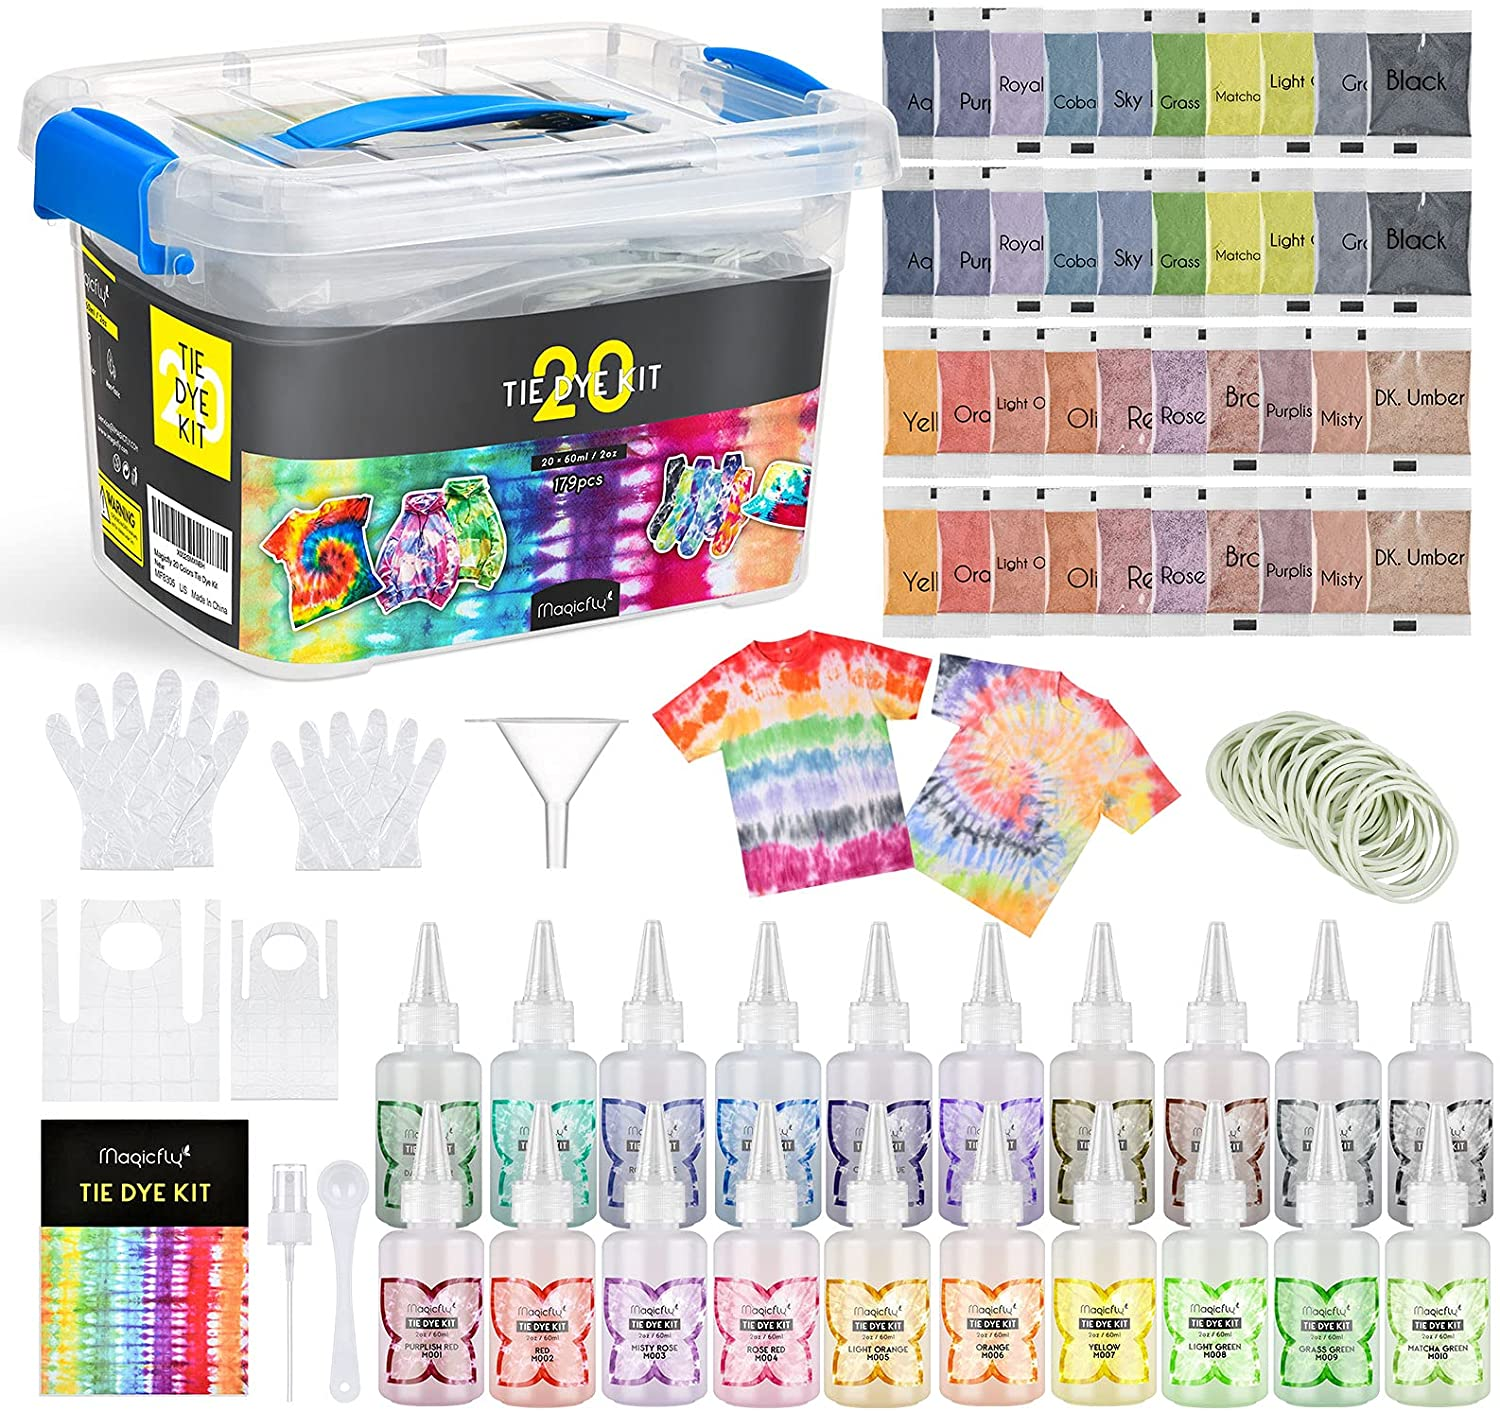 Magicfly 20 4 years warranty Colors Tie Dye Kit Fabric Pack DIY Non 179 shipfree